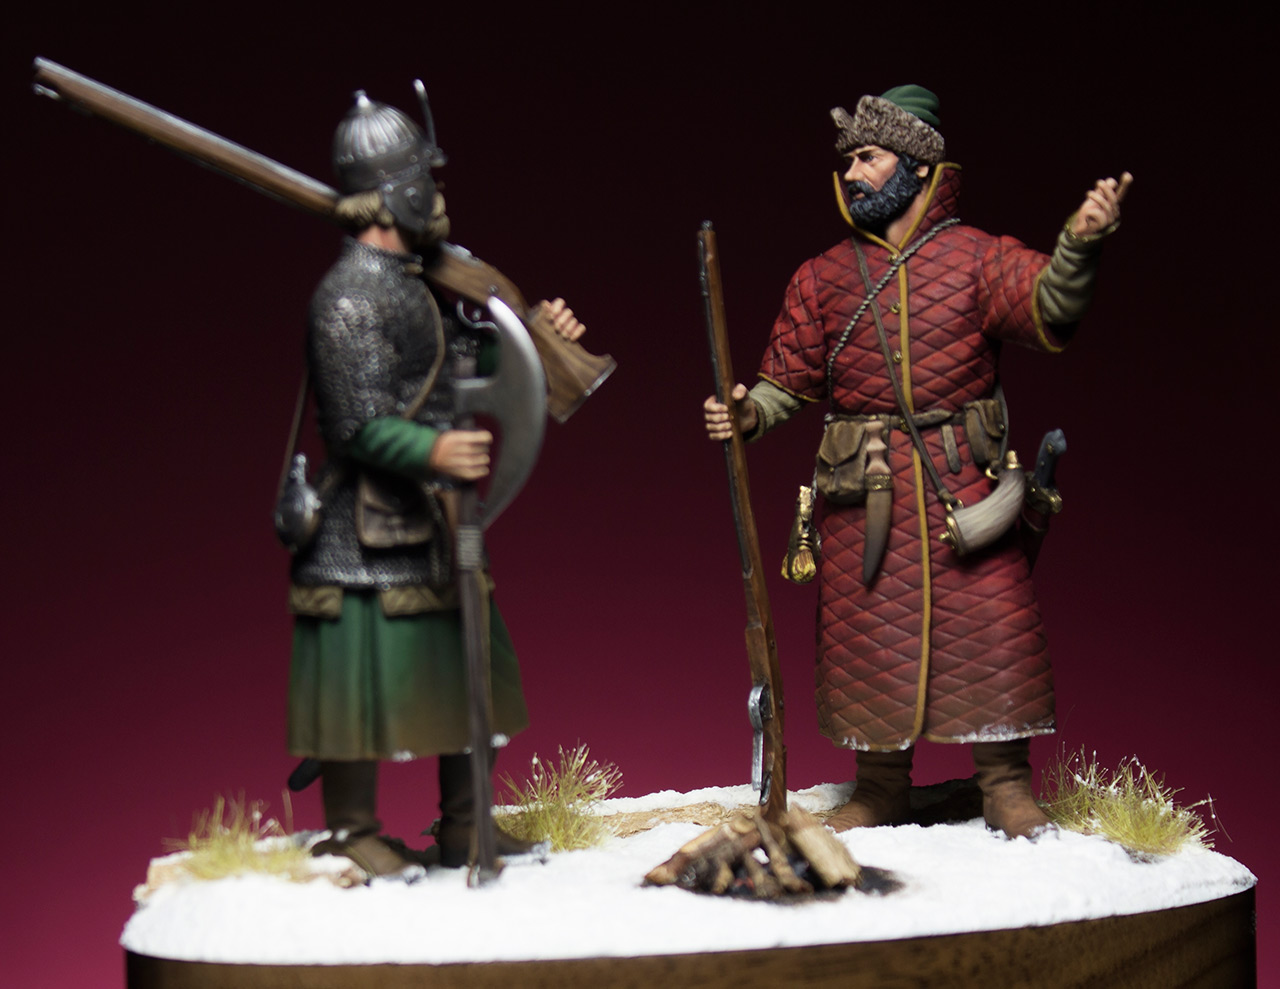 Figures: Russian musketeers, photo #7